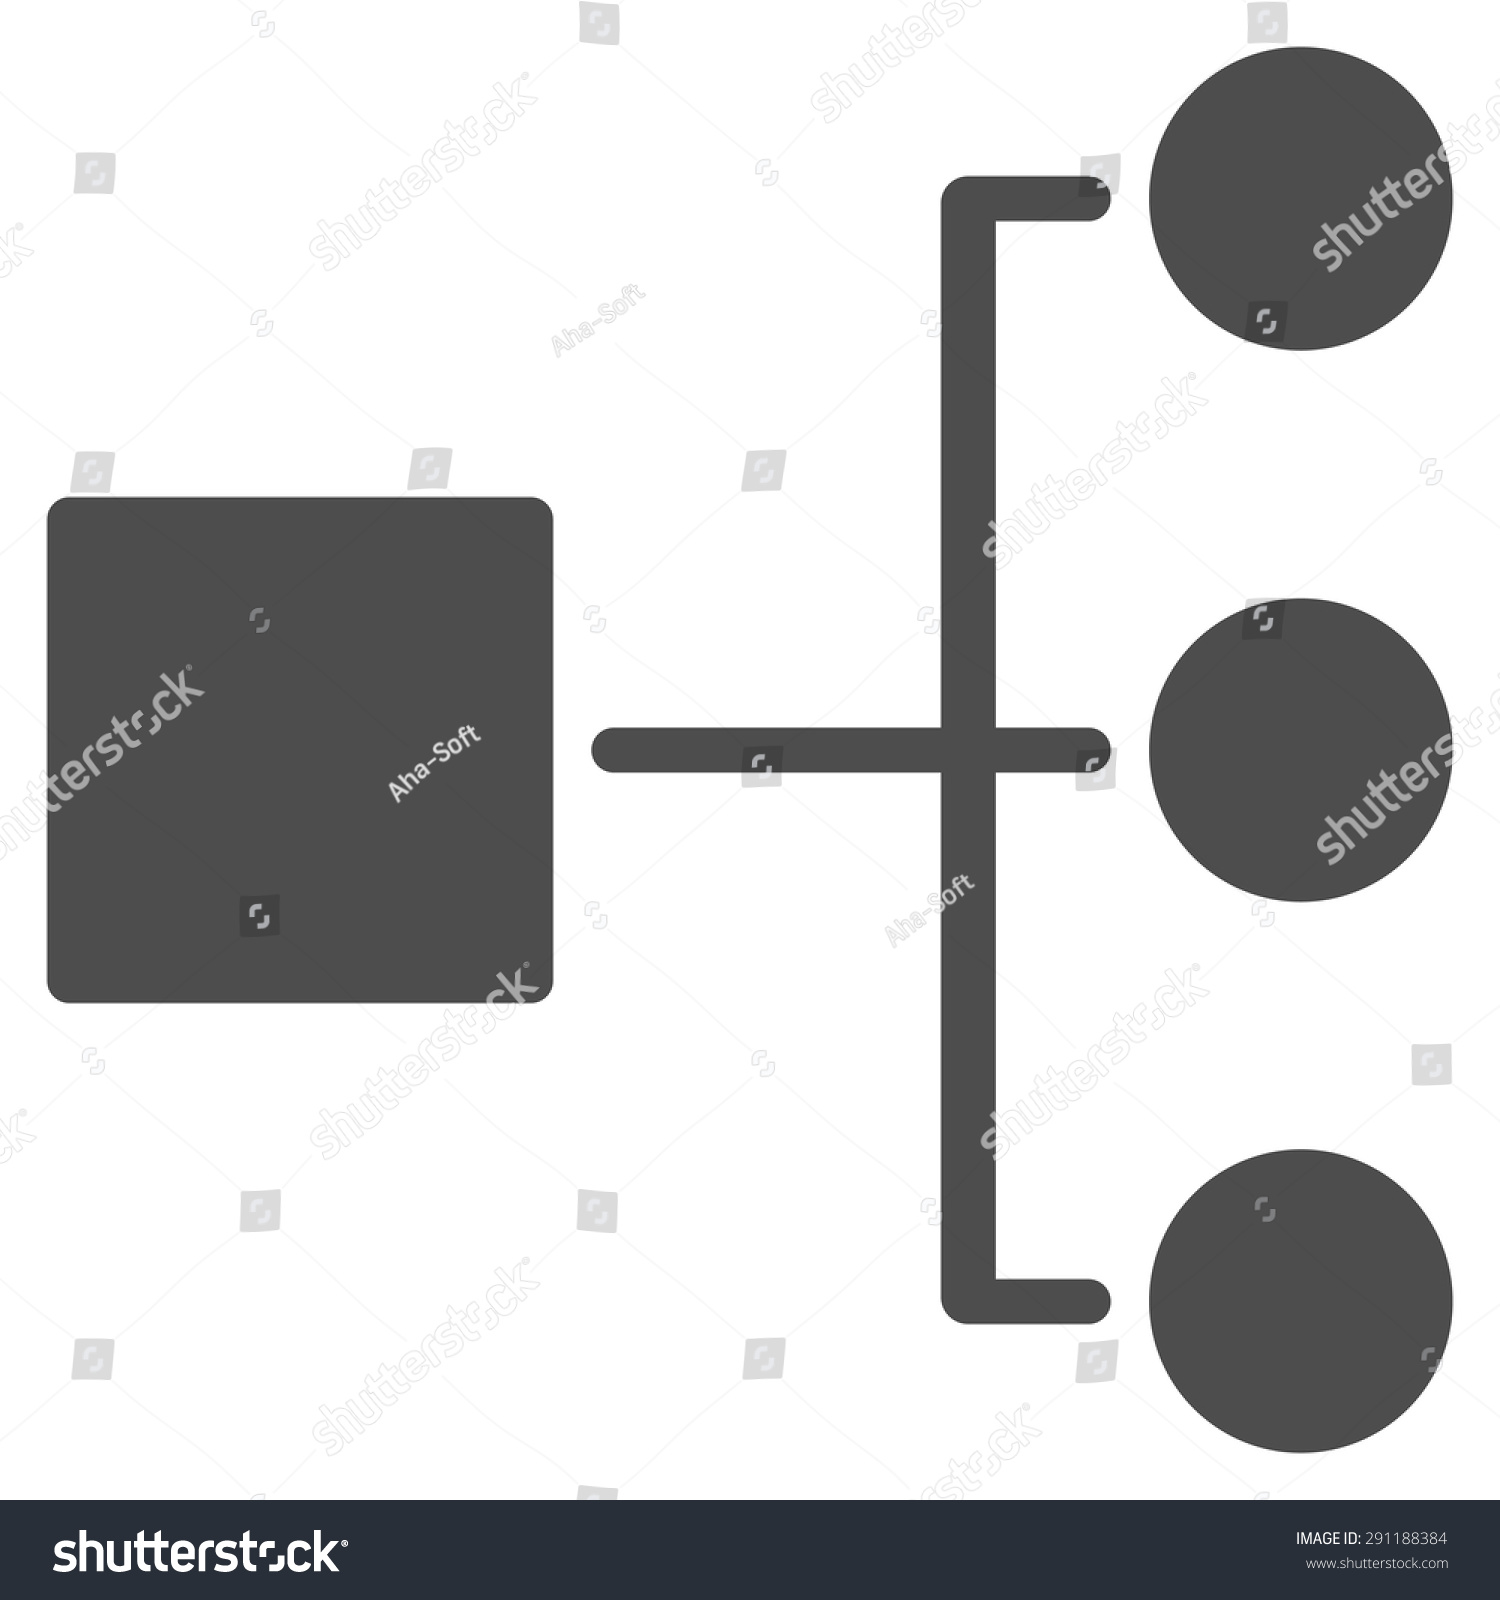 hight resolution of diagram icon from commerce set vector style flat symbol gray color rounded